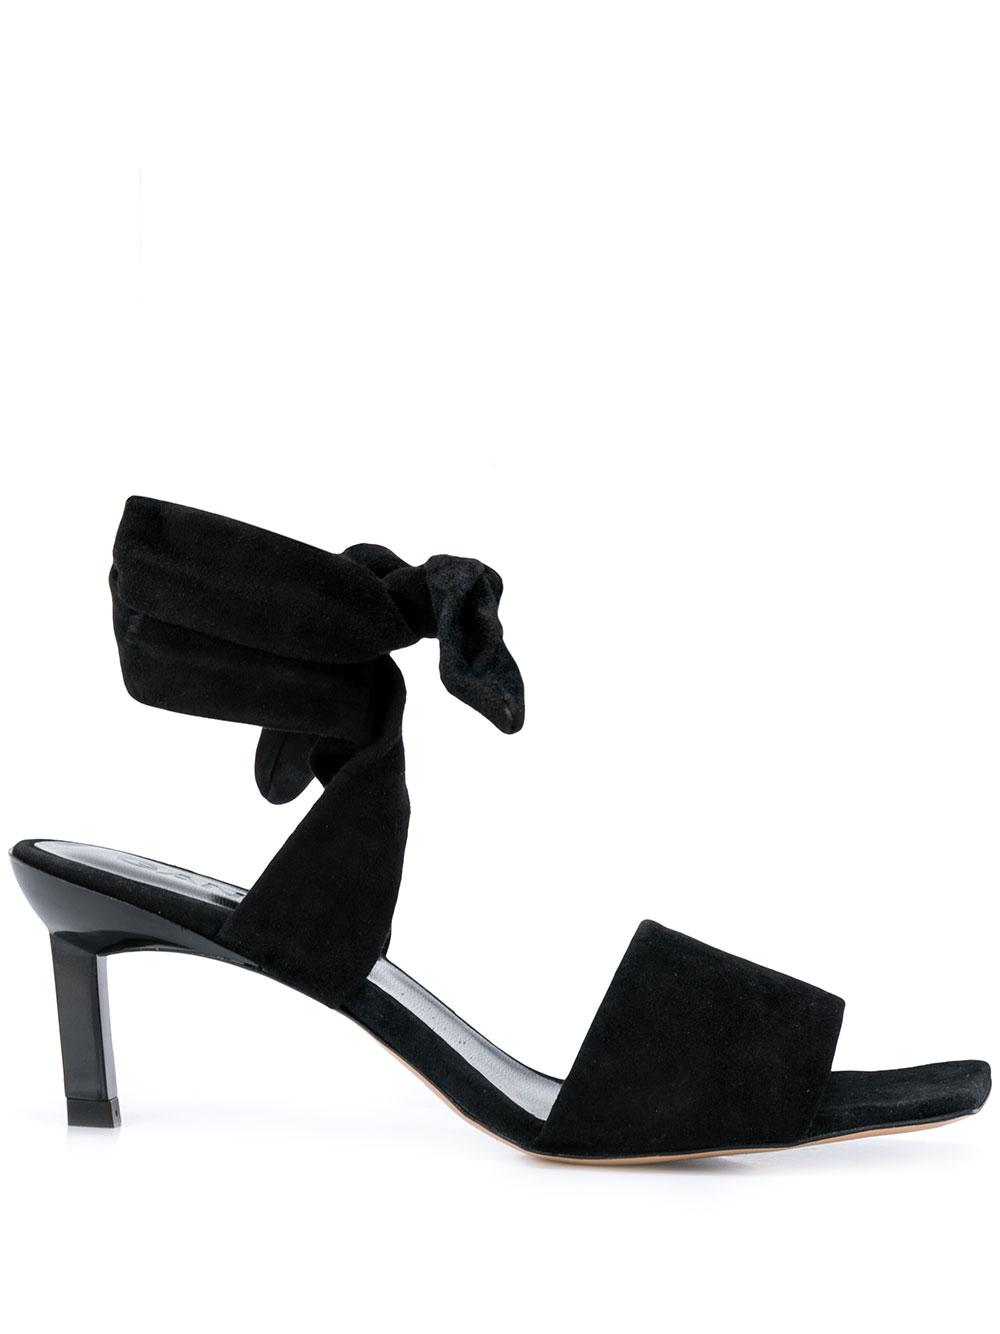 Suede Kitten Heel Sandal With Ankle Ties